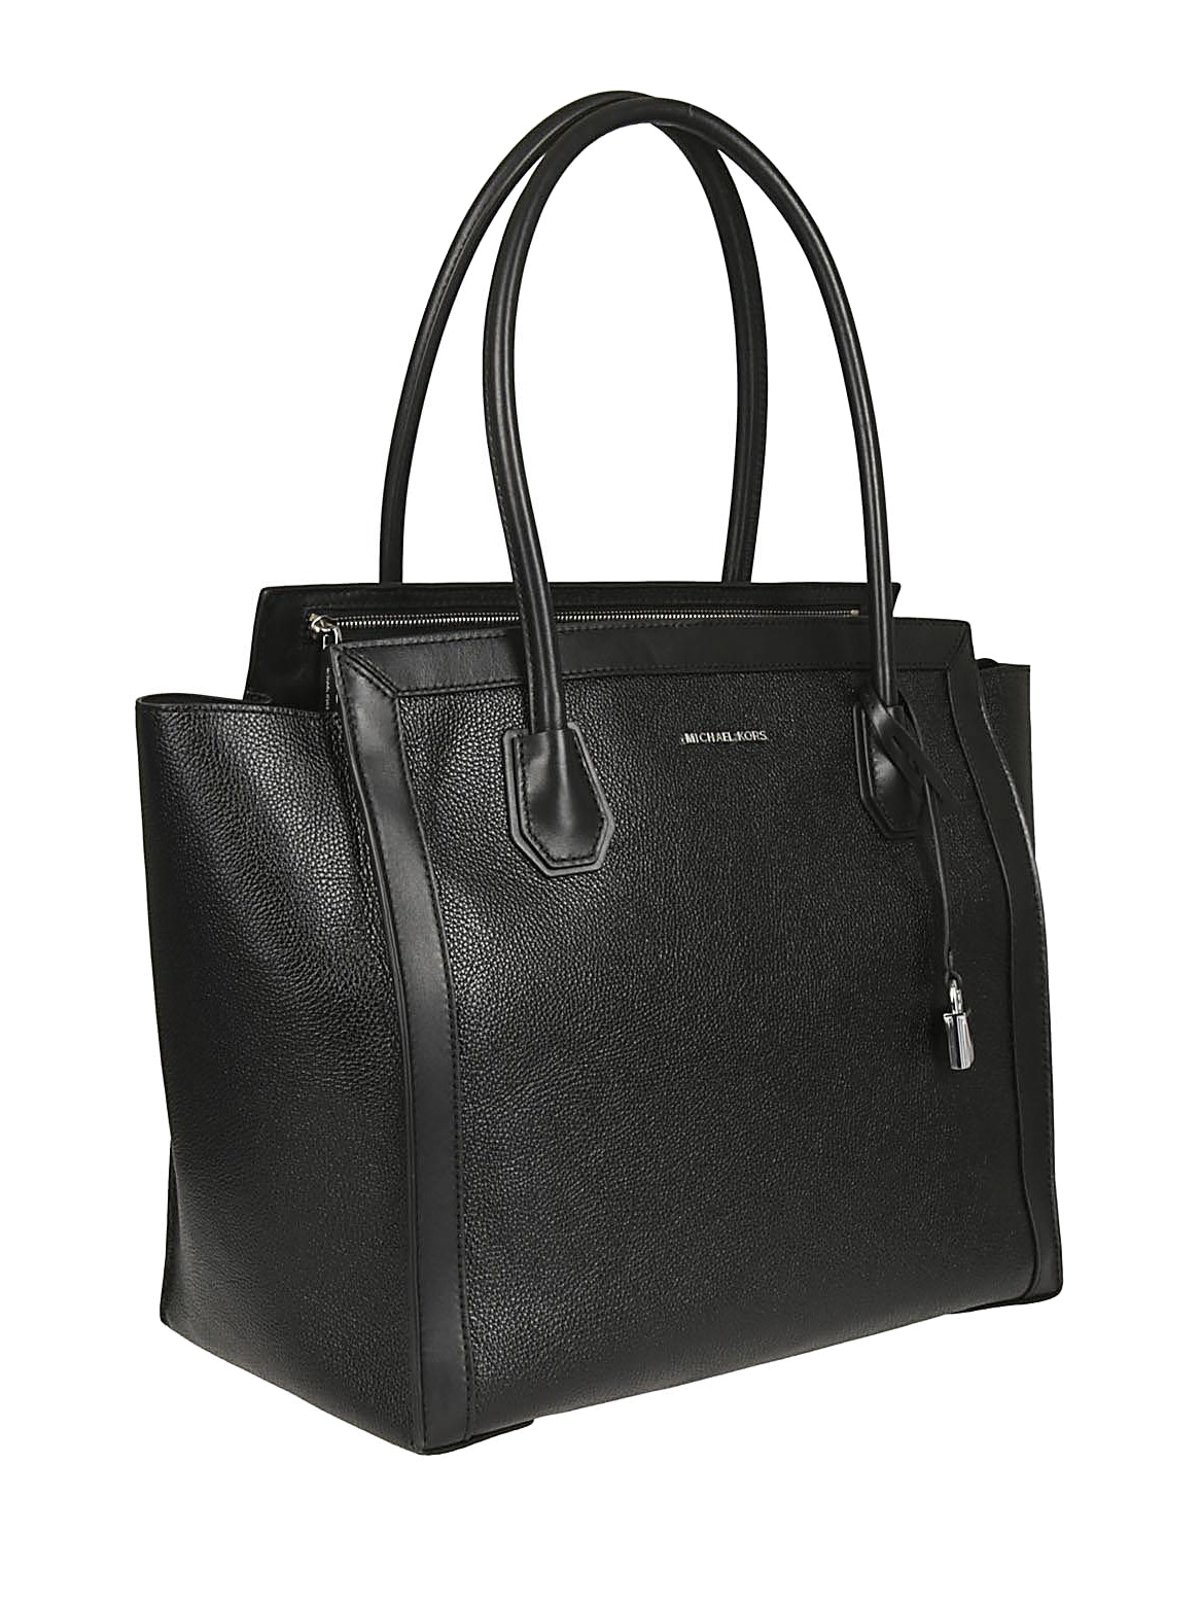 95a95b3fc885 MICHAEL KORS: totes bags online - Mercer Studio L black leather tote